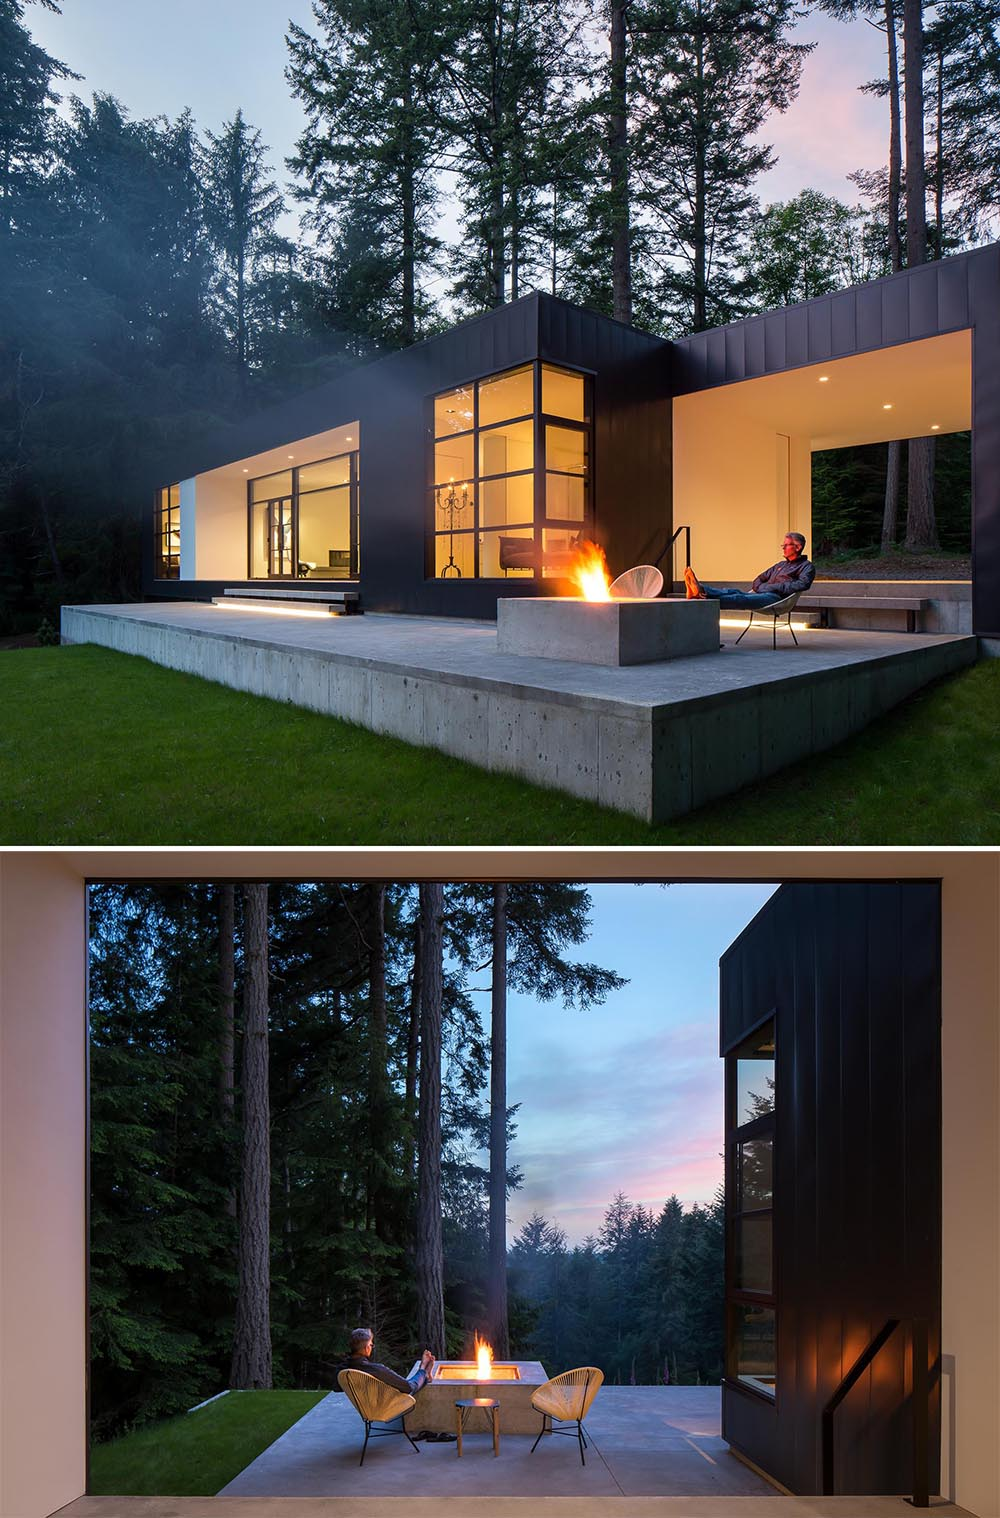 Built into the concrete terrace of this modern home, is a fire pit that can be lit to create a cozy outdoor experience.